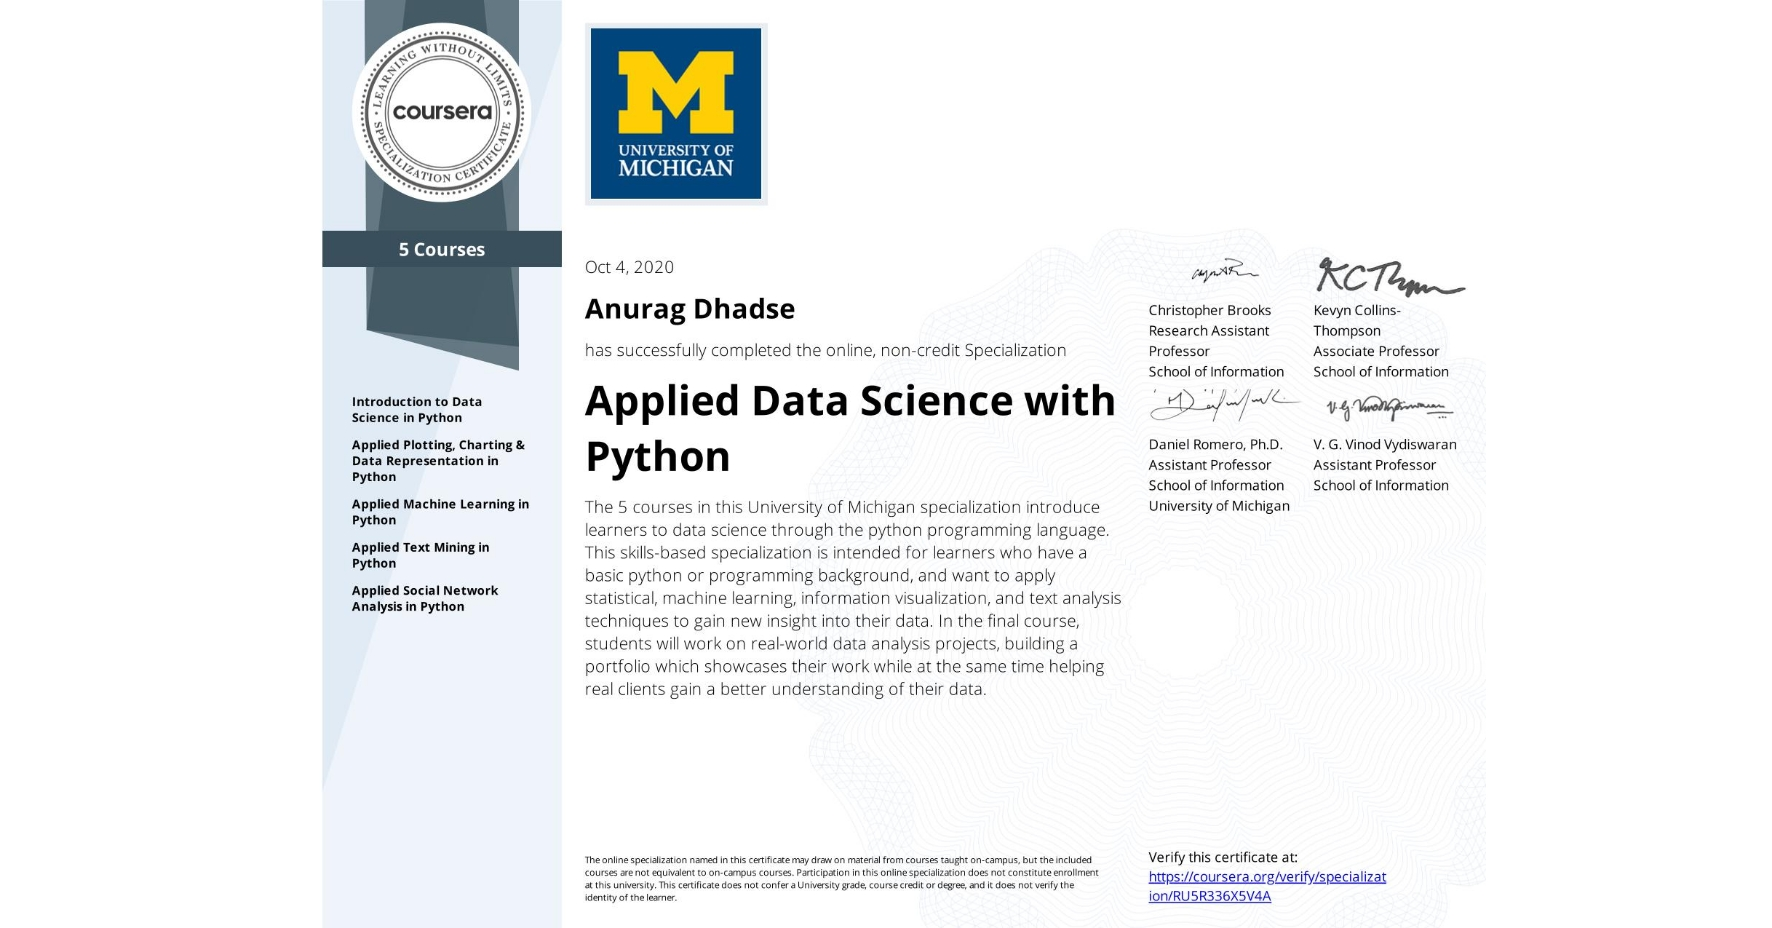 View certificate for Anurag Dhadse, Applied Data Science with Python, offered through Coursera. The 5 courses in this University of Michigan specialization introduce learners to data science through the python programming language. This skills-based specialization is intended for learners who have a basic python or programming background, and want to apply statistical, machine learning, information visualization, and text analysis techniques to gain new insight into their data. In the final course, students will work on real-world data analysis projects, building a portfolio which showcases their work while at the same time helping real clients gain a better understanding of their data.